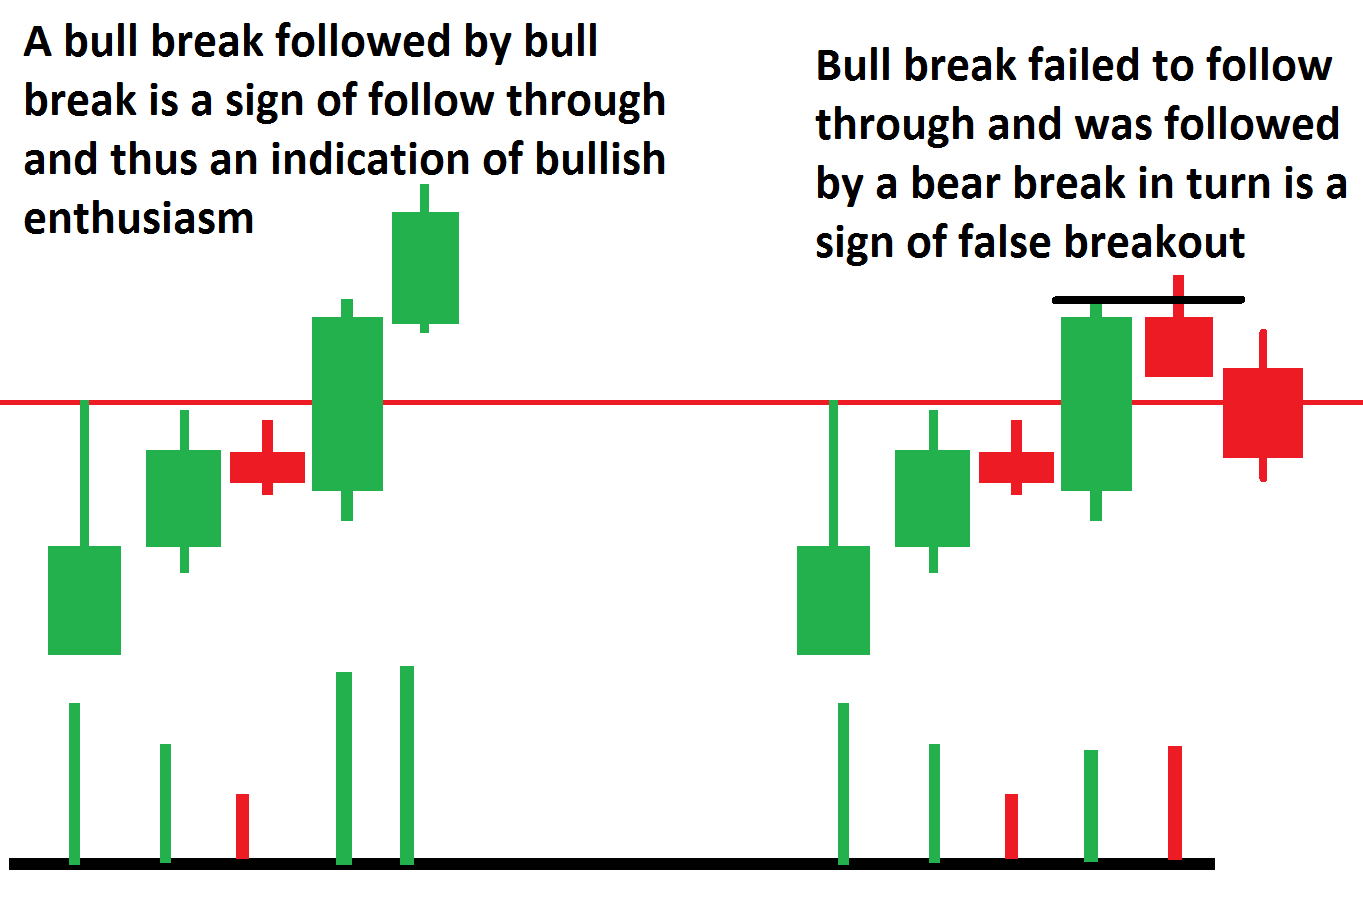 For confirmation for successful breakout